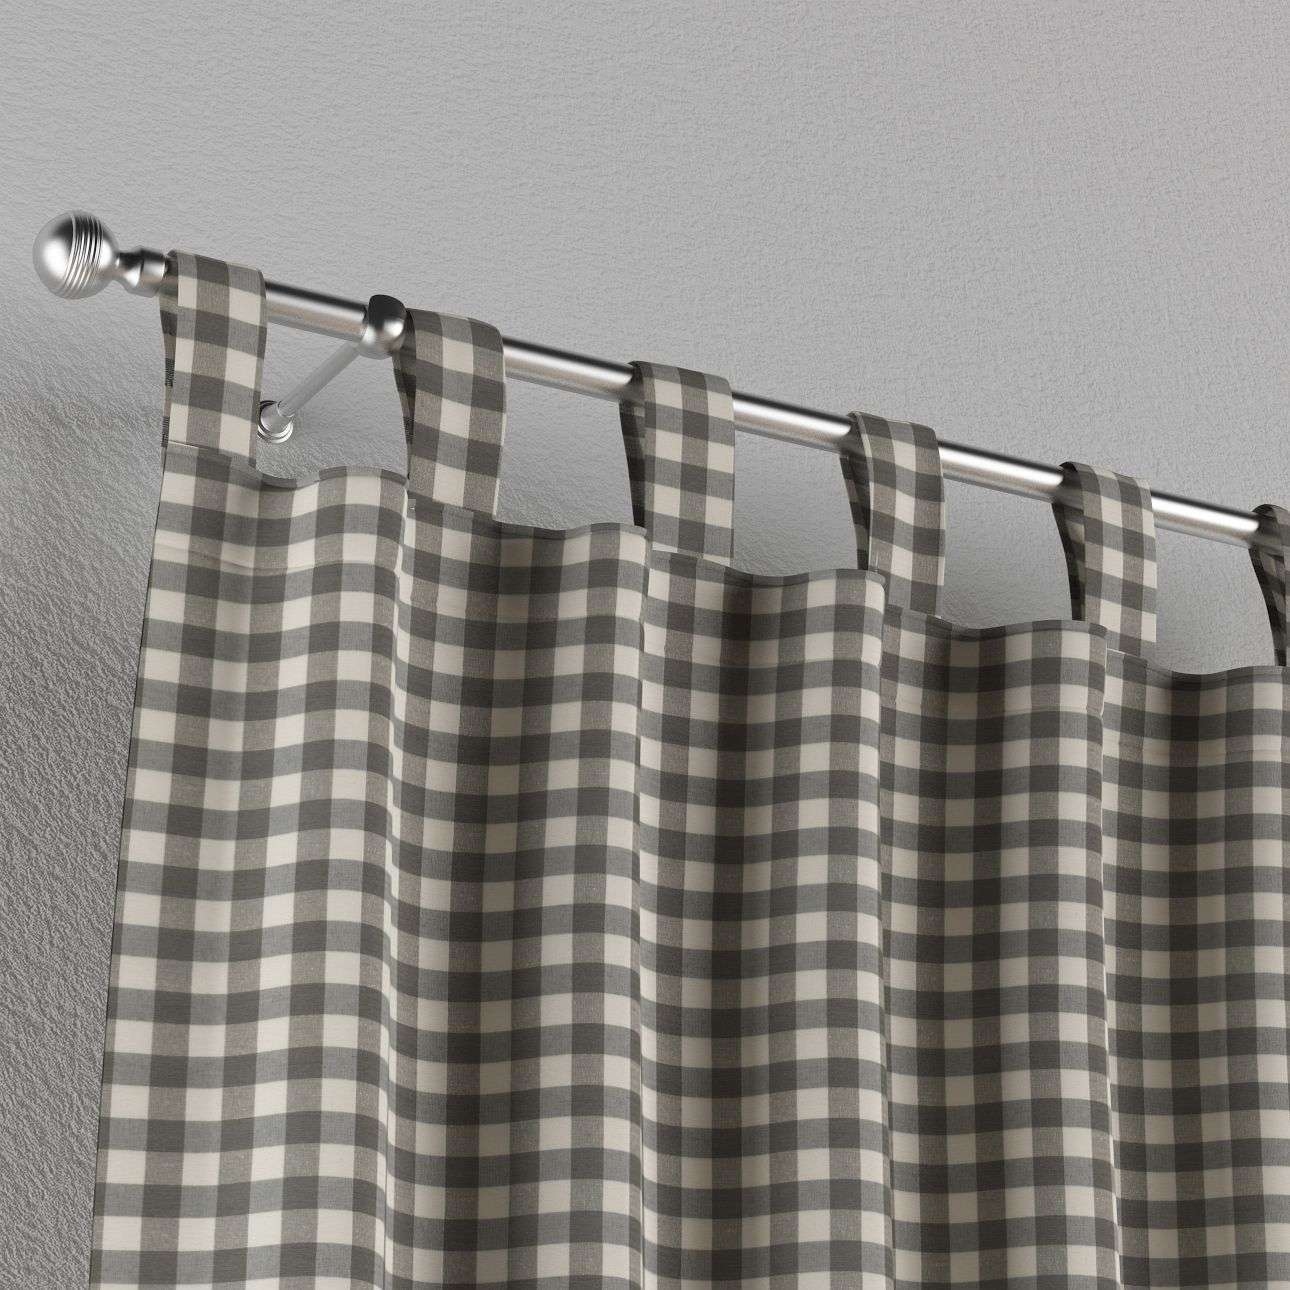 Tab top curtains 130 x 260 cm (51 x 102 inch) in collection Quadro, fabric: 136-11